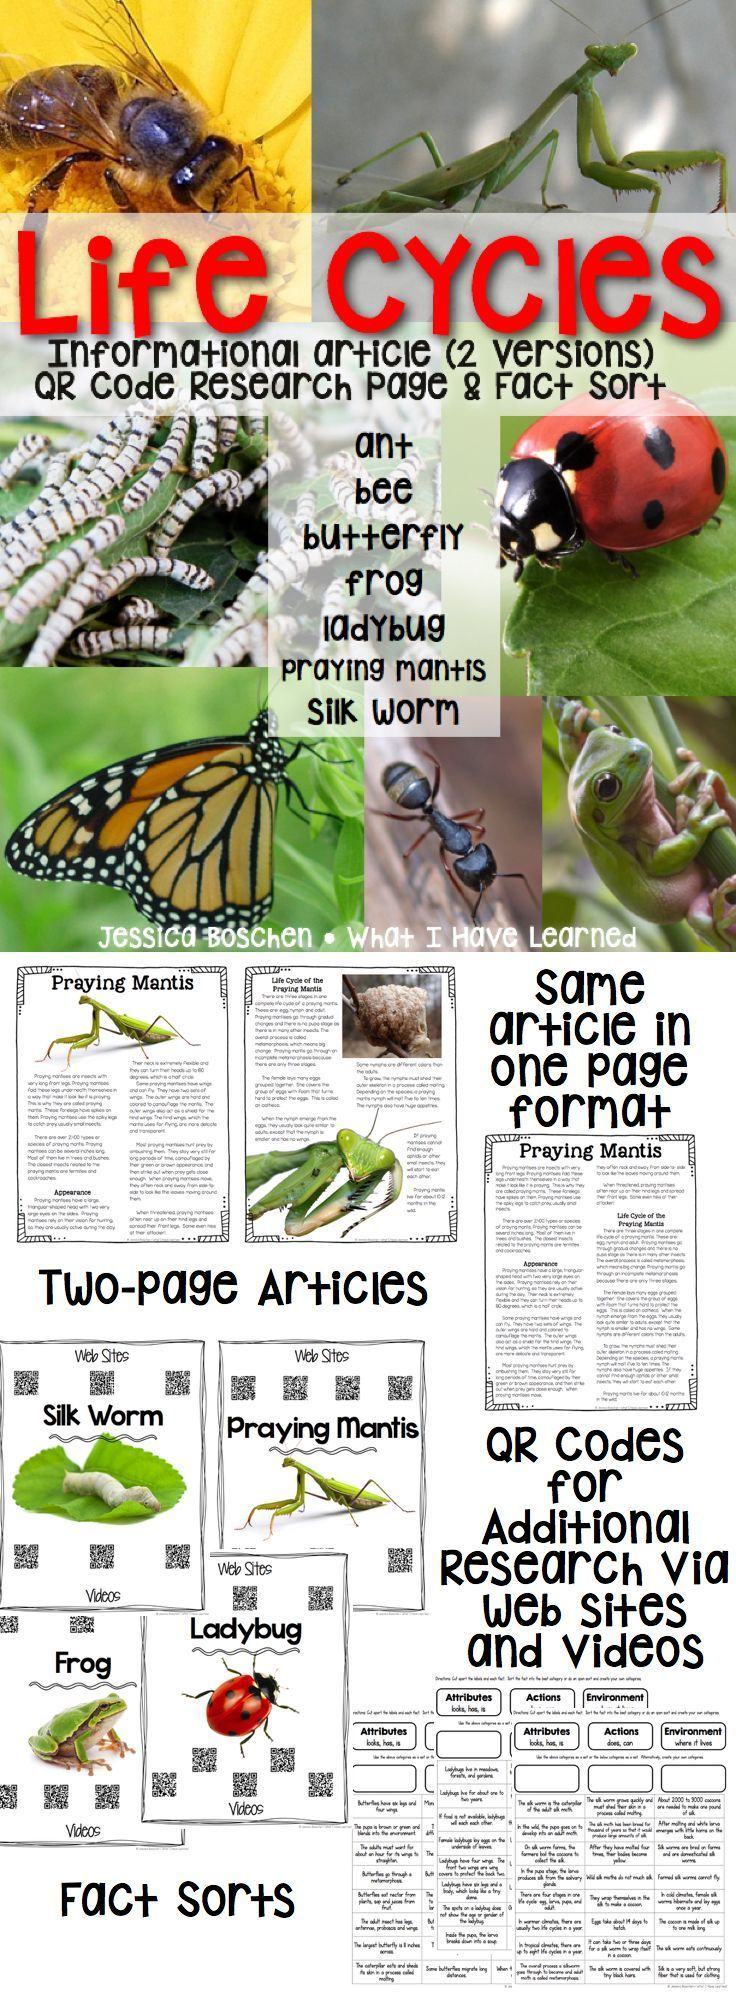 Life Cycle Articles in two versions (two-page with photos and one page with just text), QR Codes for additional research via web sites and videos, and Fact Sheets useful for sorting.  These are perfect for my second and third grade students.